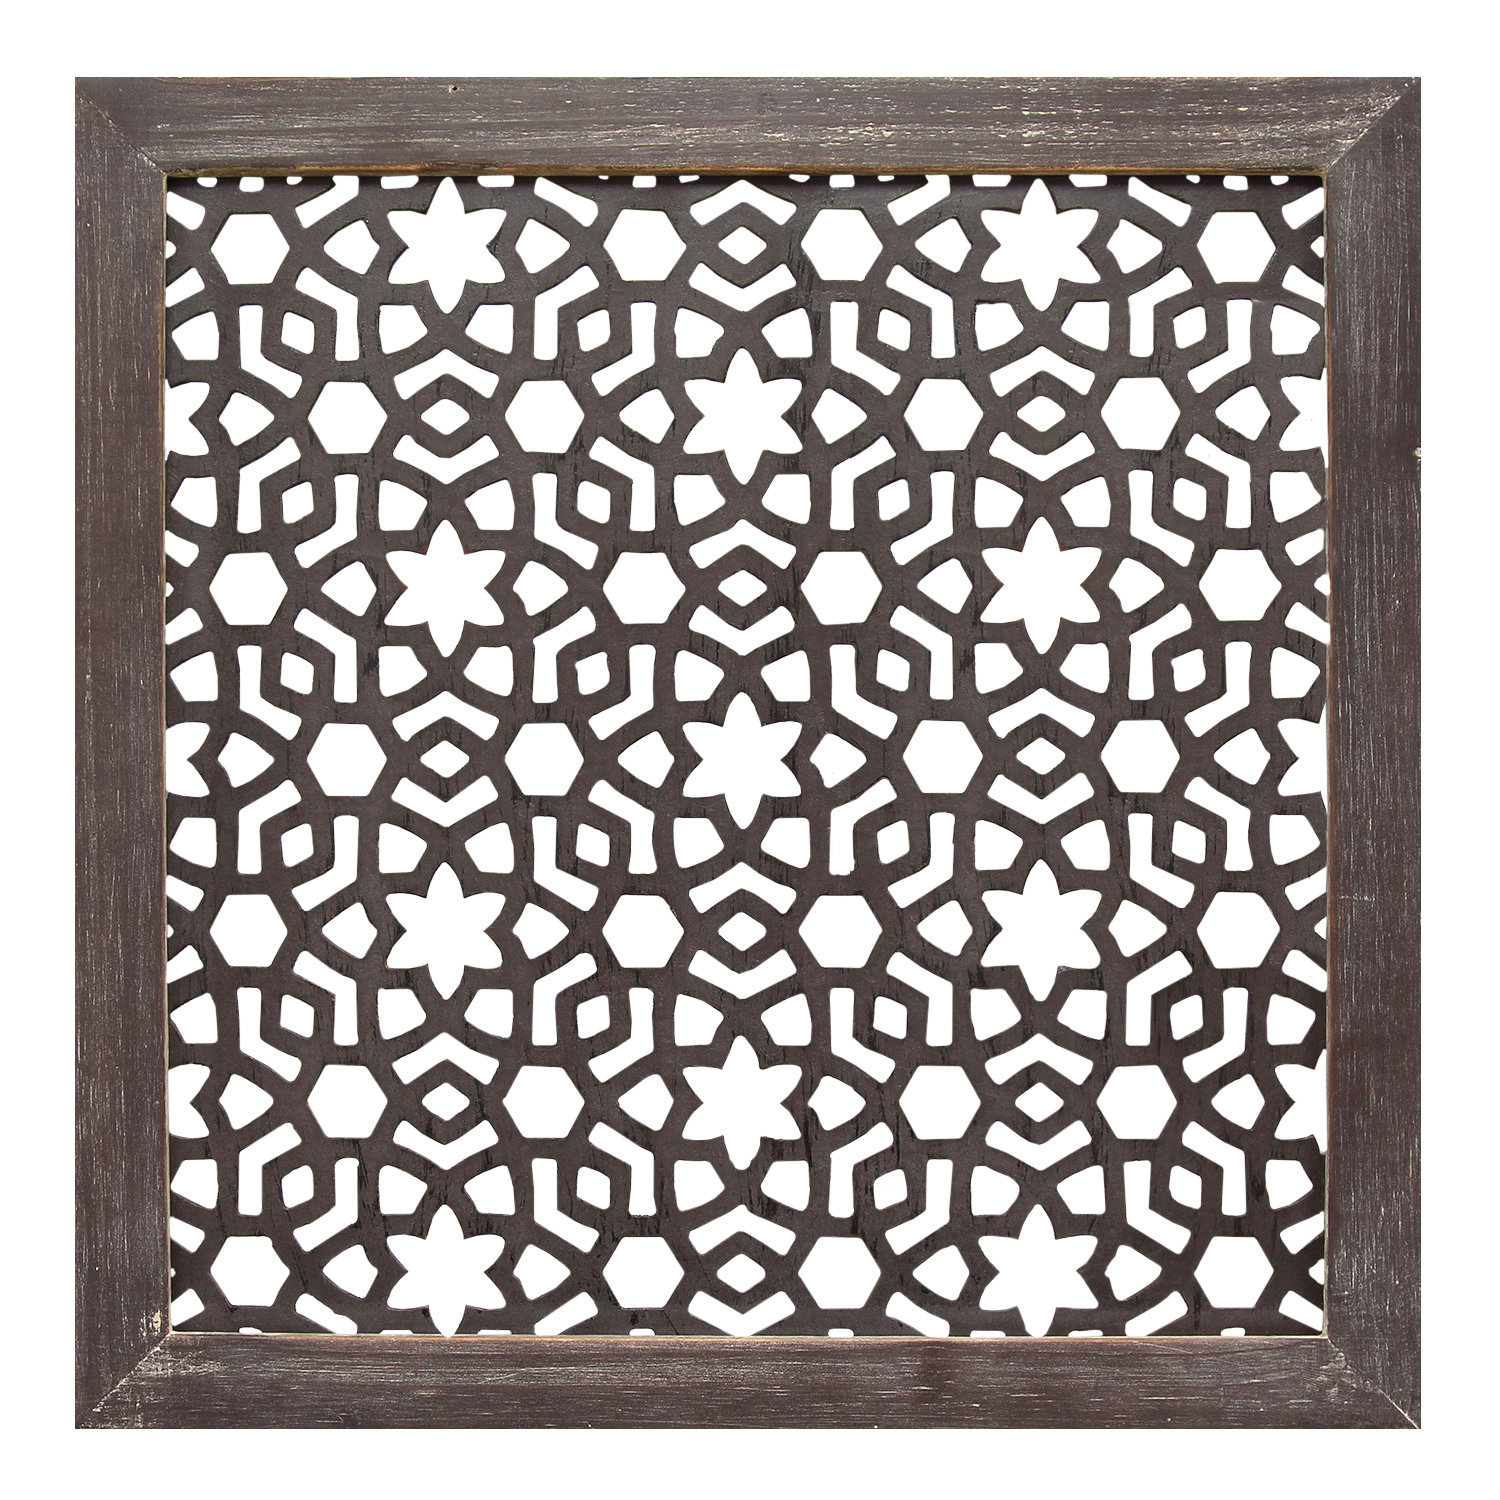 Framed Laser-Cut Wall Décor with regard to Desford Leaf Wall Decor (Image 14 of 30)